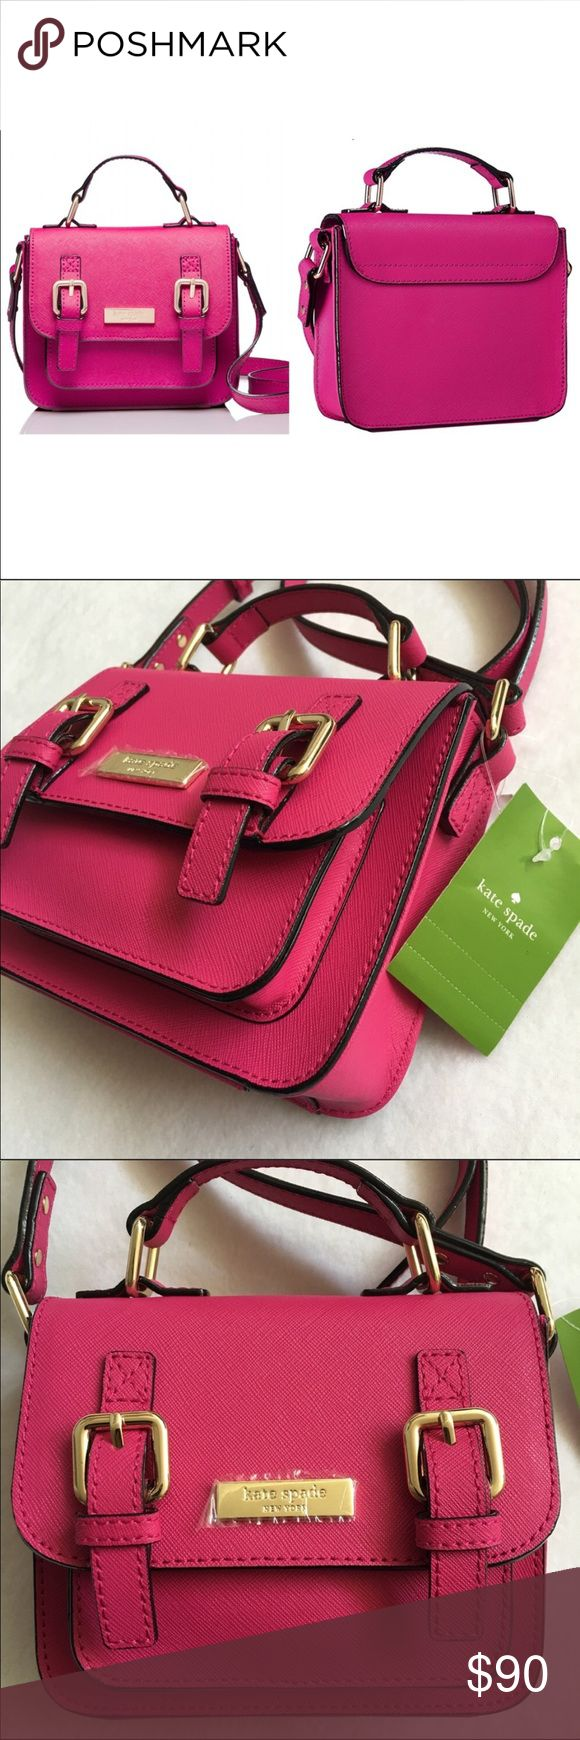 """Authentic Kate Spade scout bag NWT! ♠️ NWT! Beautiful scout bag by Kate Spade ♠️ in sweetheart pink with gold hardware! Absolutely darling! Measurements are: 6 1/4"""" x 4 3/4"""" x 1 1/2""""w with adjustable strap that drops to approximately 17"""". No trades. Please no low offers. kate spade Bags Crossbody Bags"""